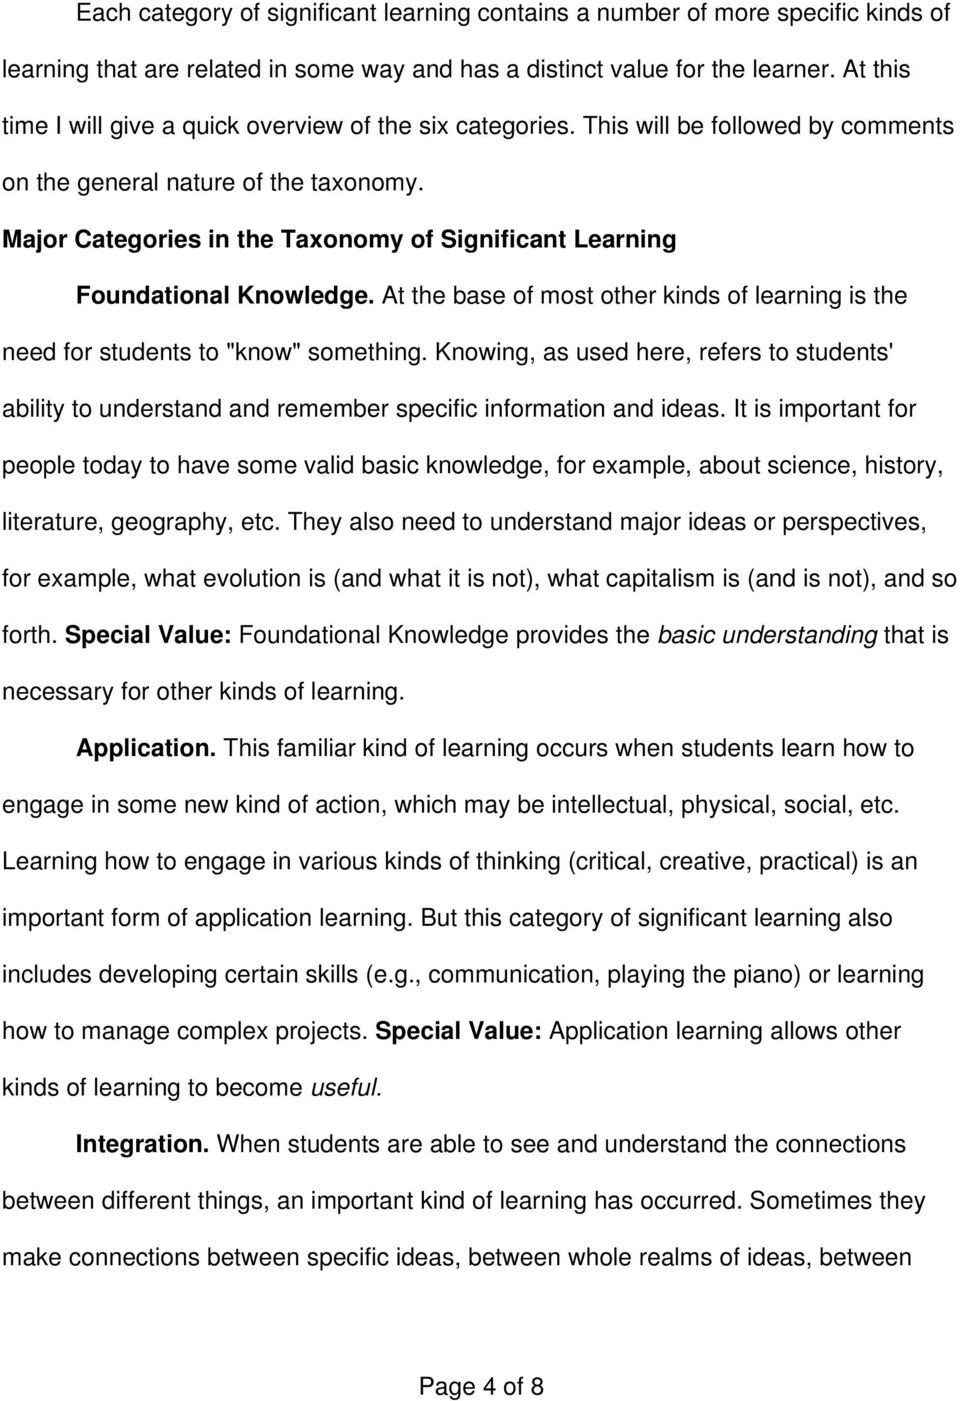 "Major Categories in the Taxonomy of Significant Learning Foundational Knowledge. At the base of most other kinds of learning is the need for students to ""know"" something."